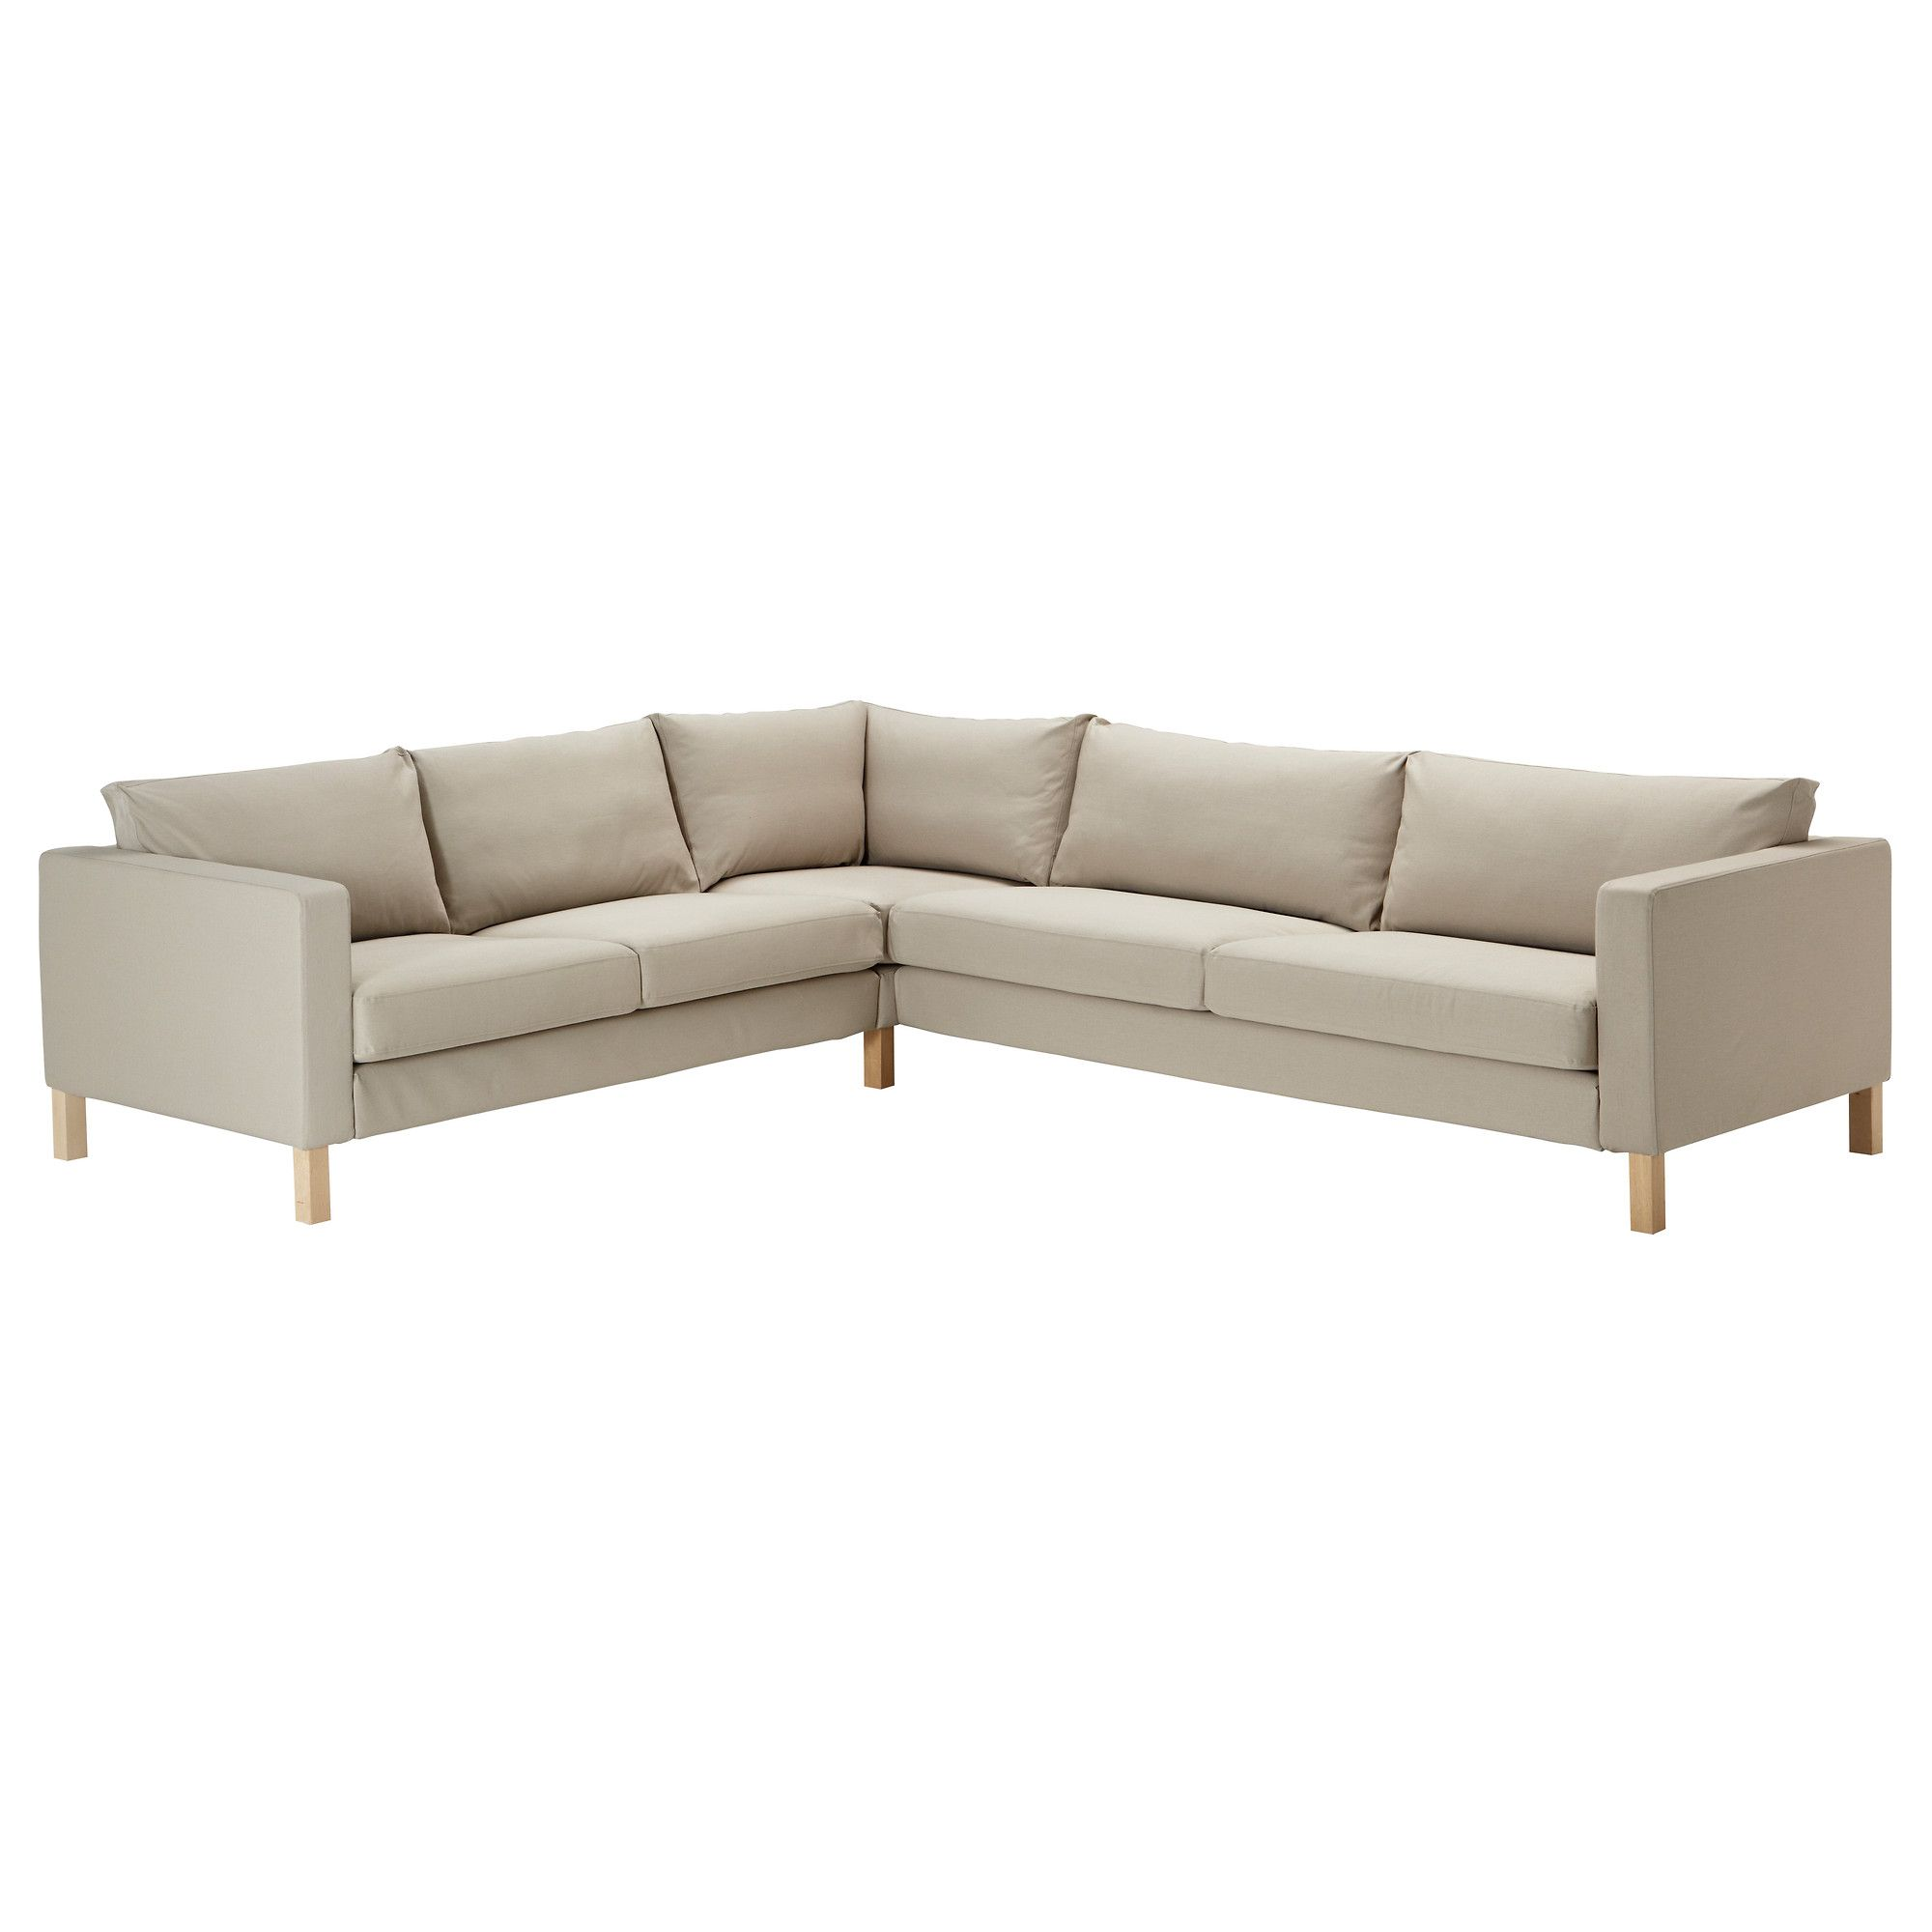 Us Furniture And Home Furnishings Leather Corner Sofa Ikea Corner Sofa Corner Sofa